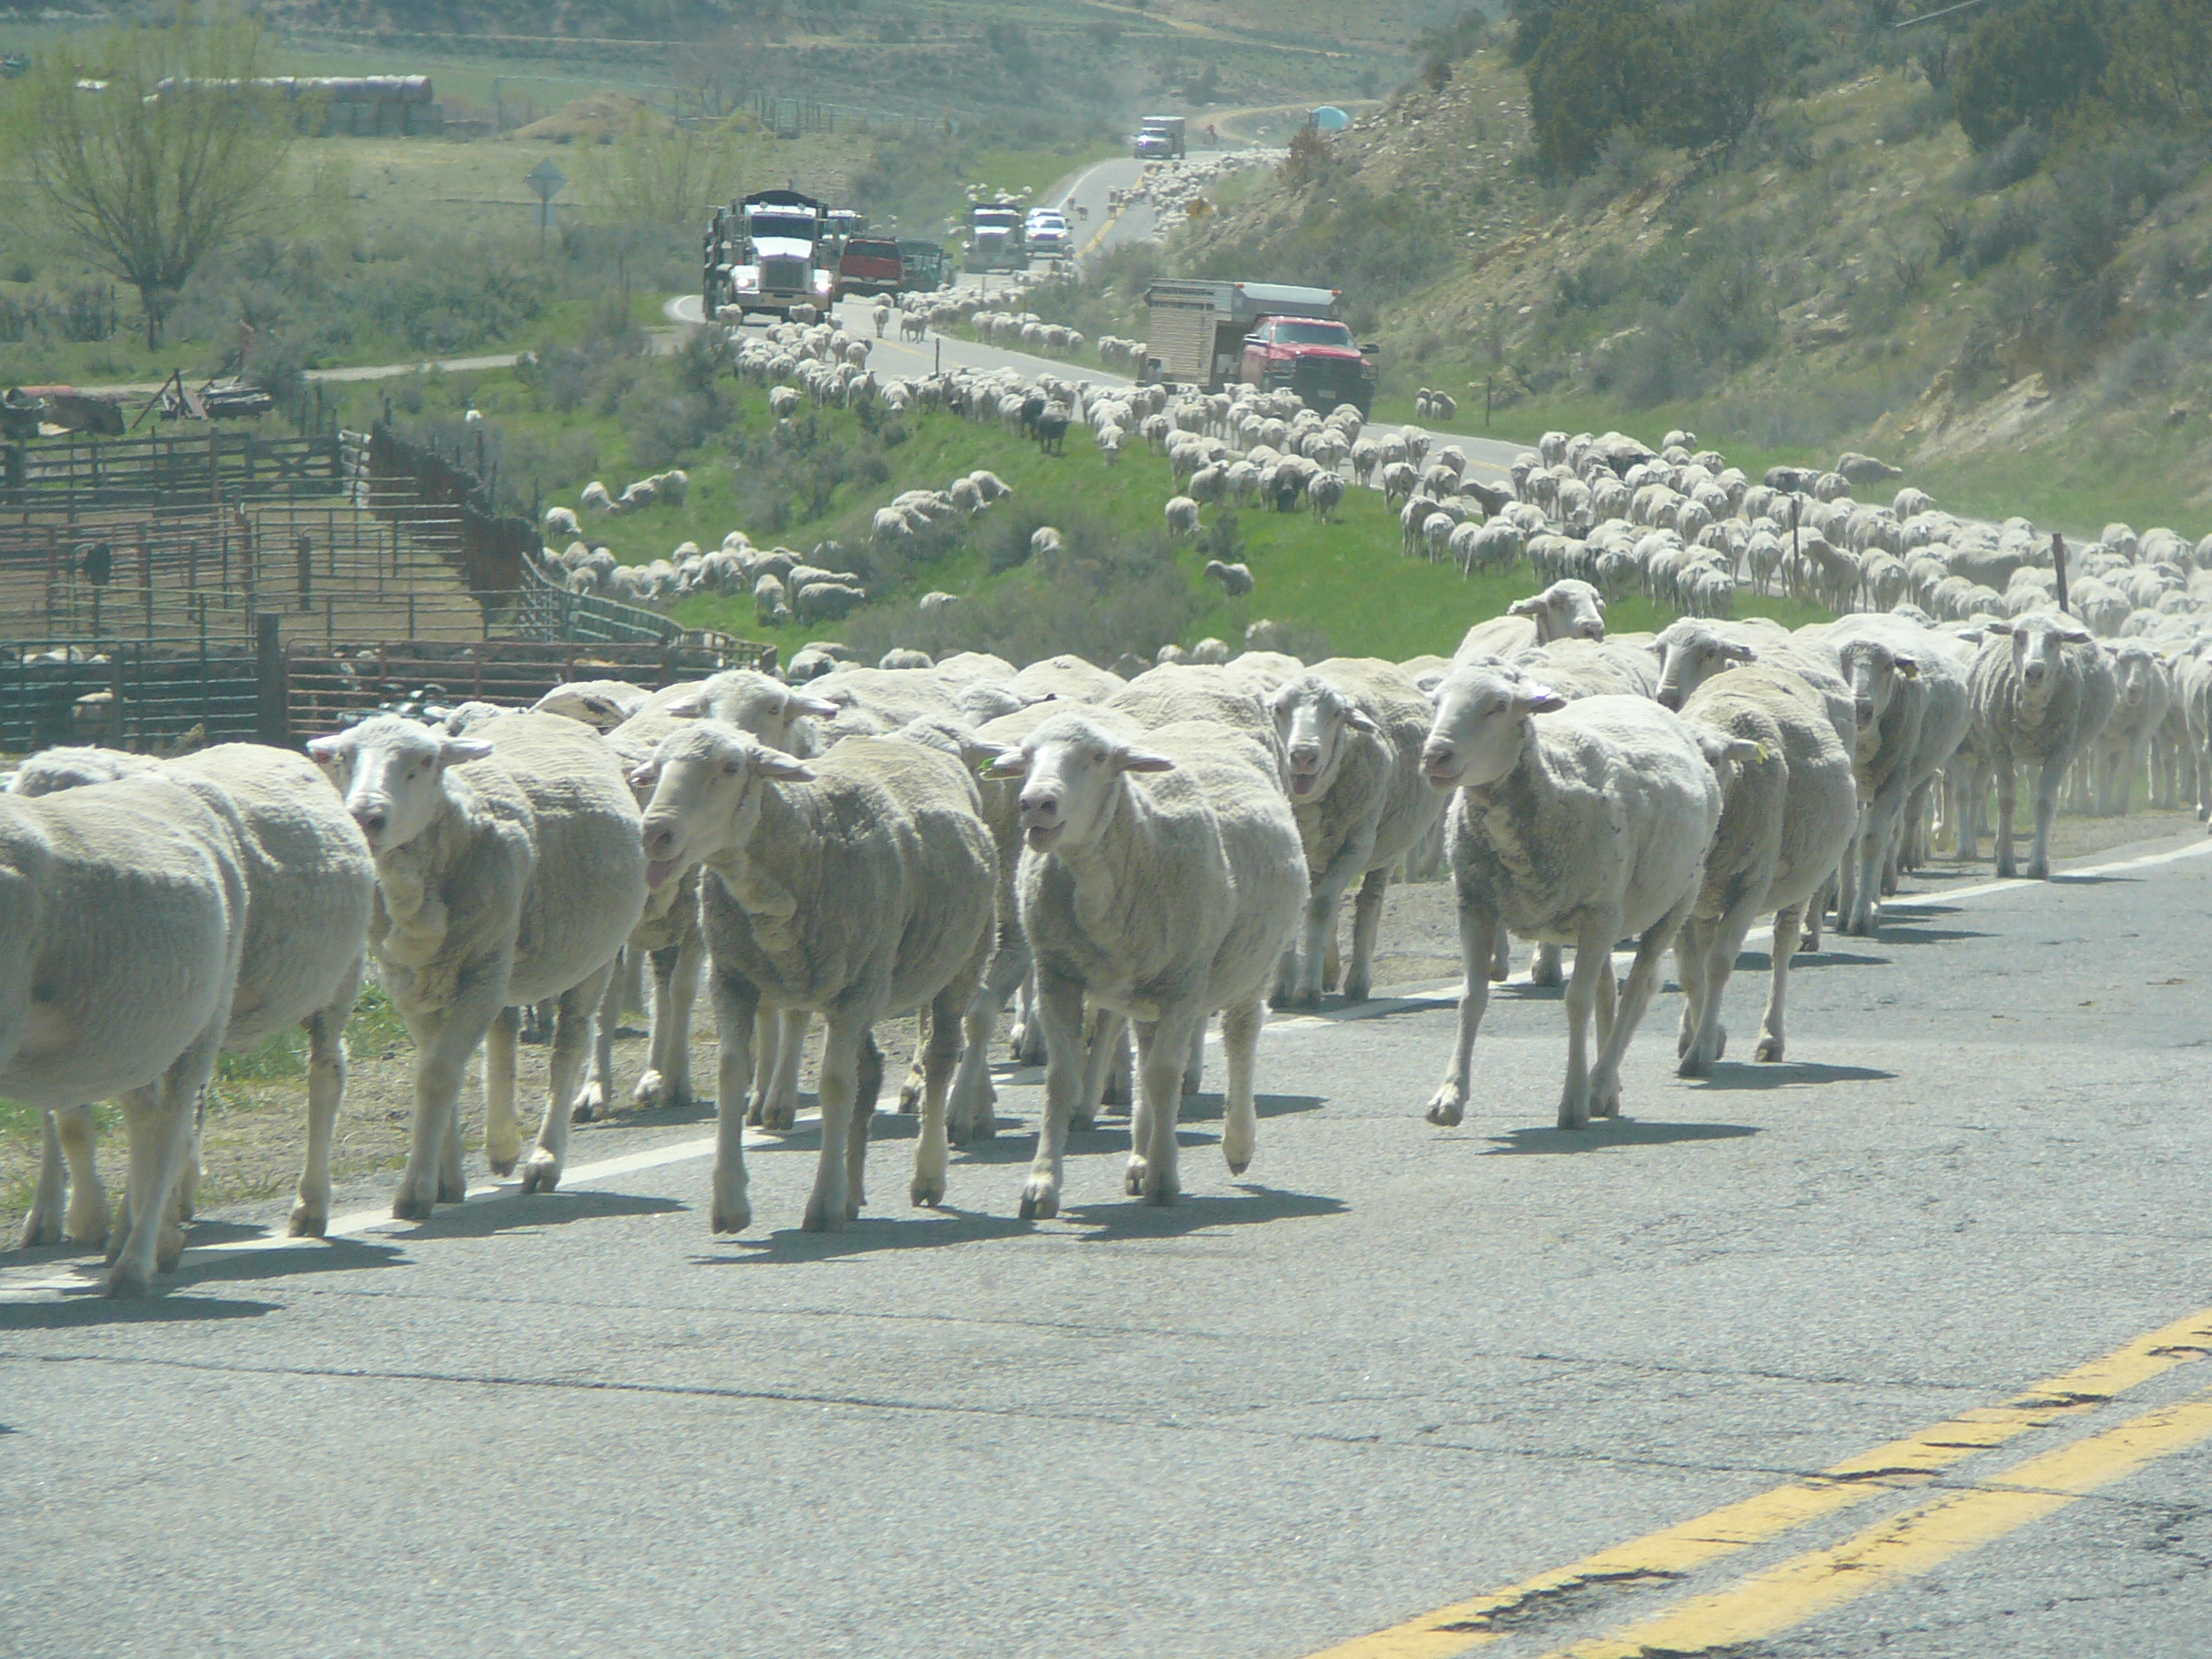 Miles of sheep